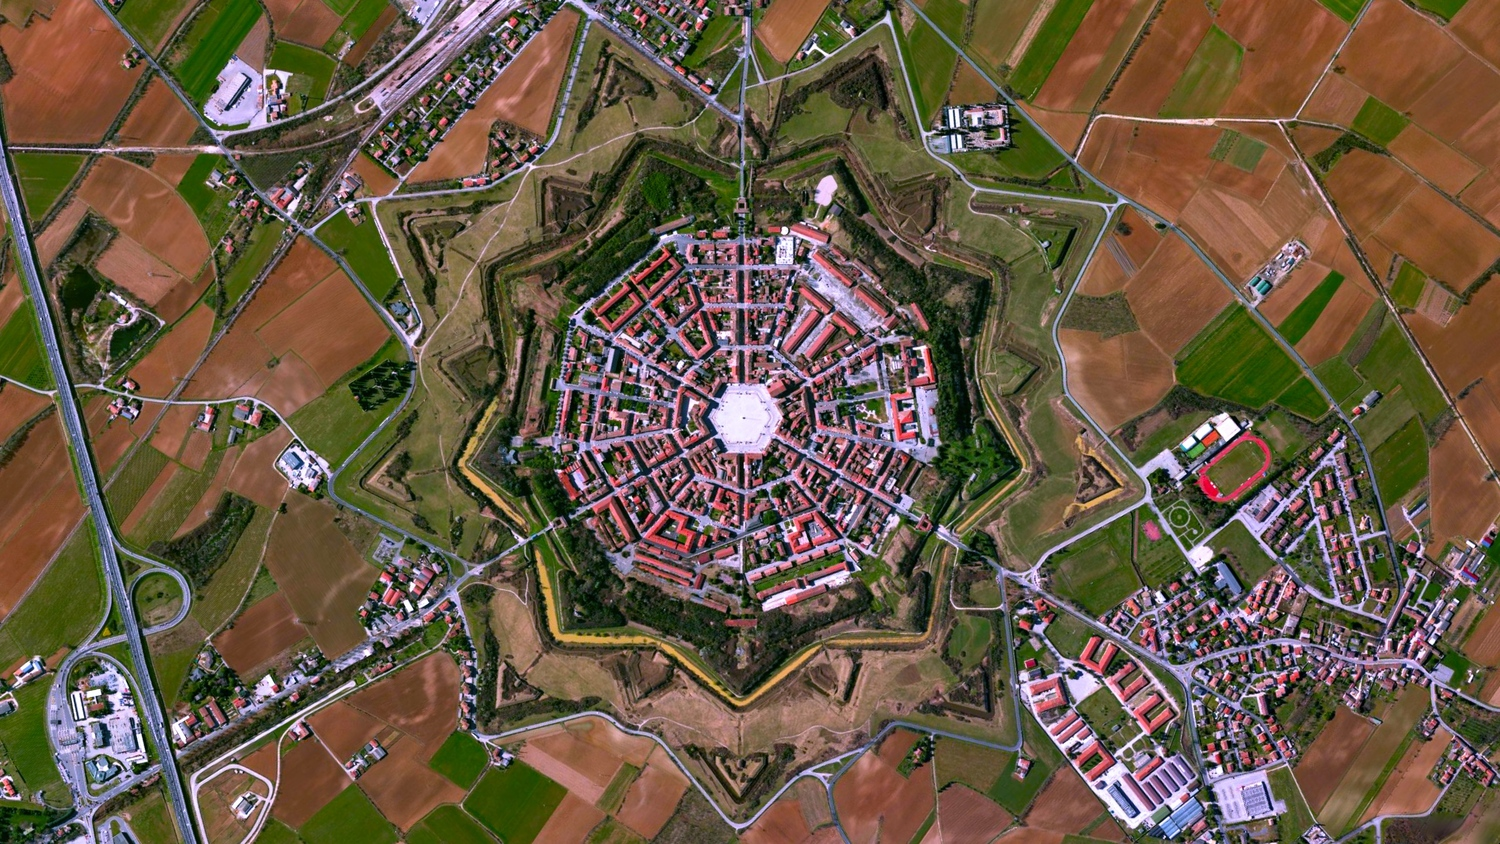 Vauban style star fort by Vincenzo Scamozzi in Palmanova, Italy